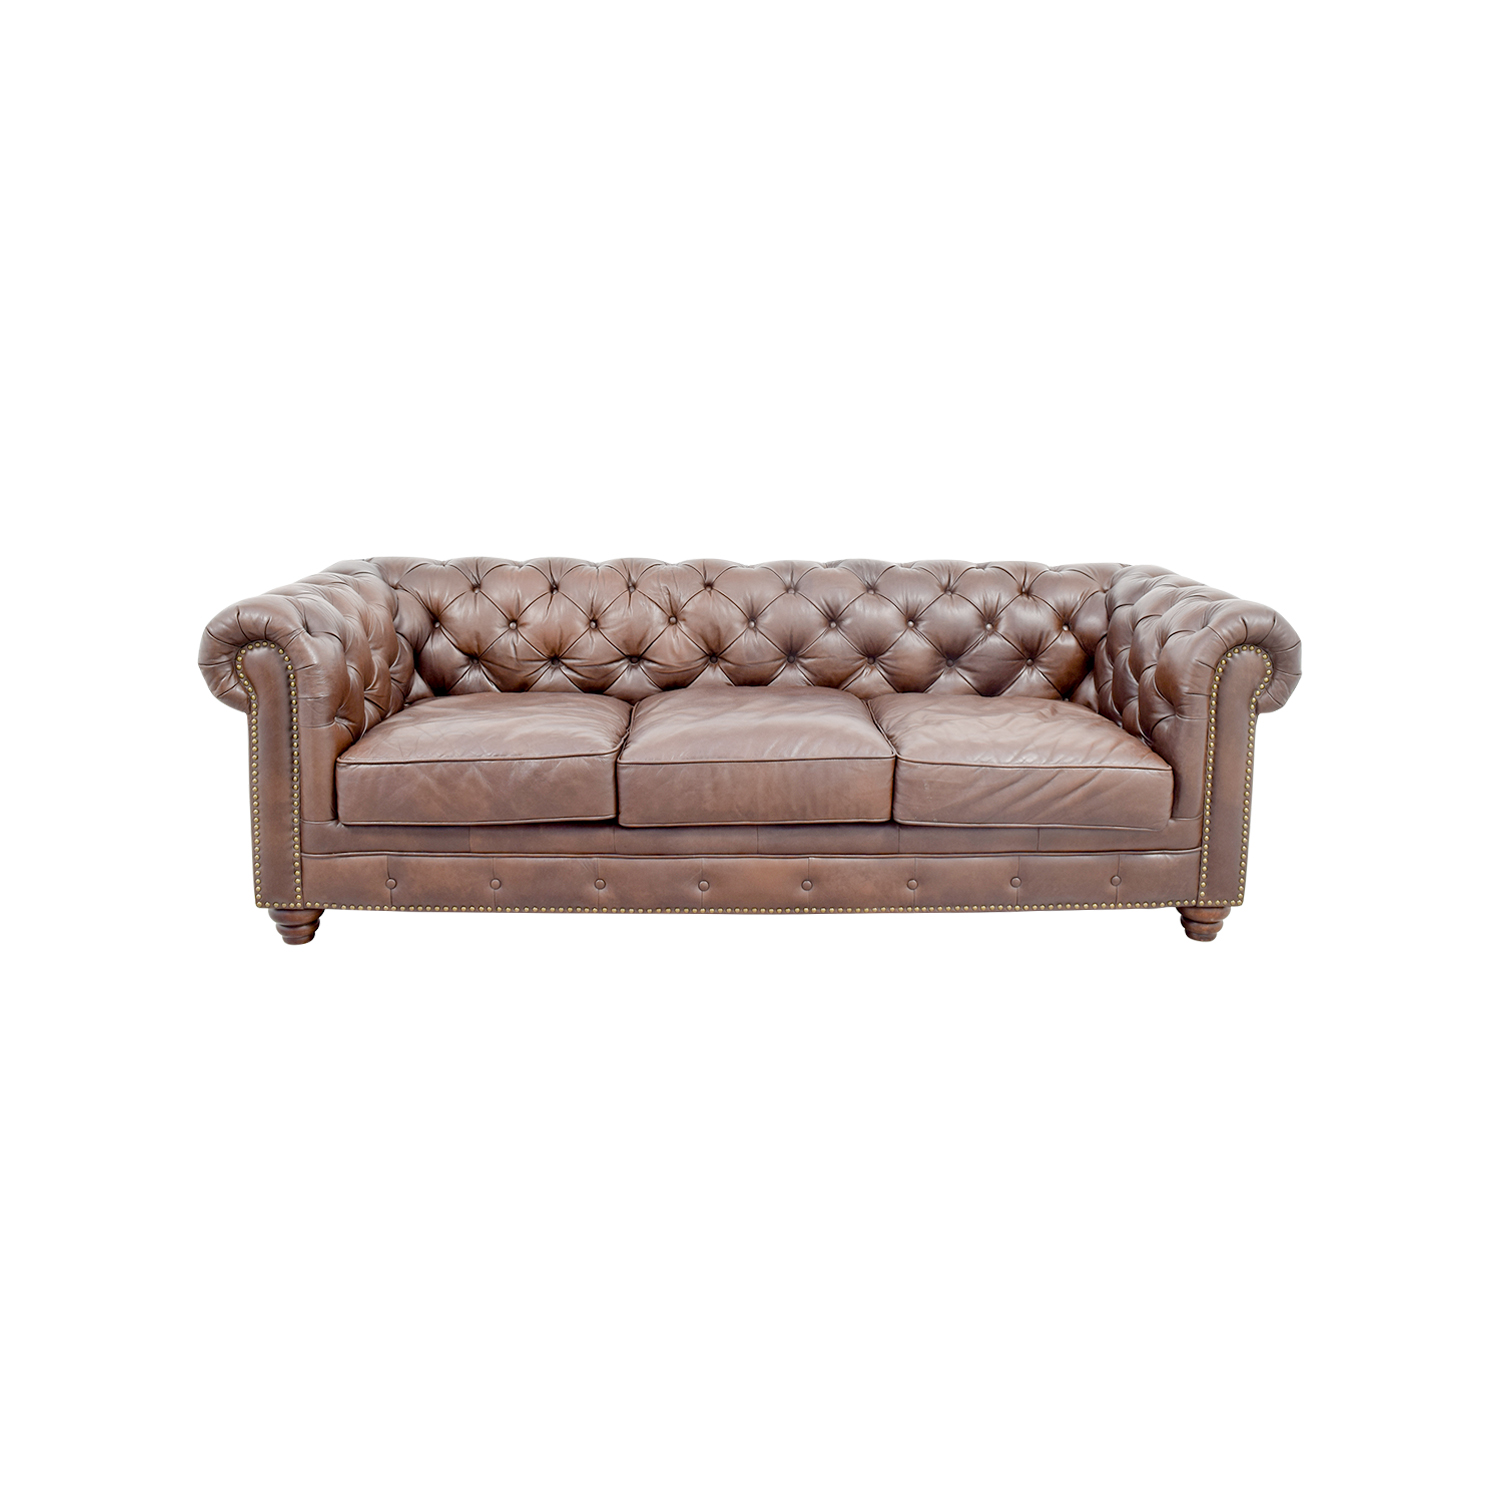 36% OFF - Raymour & Flanigan Raymour & Flanigan Bellanest Saddler Tufted  Leather Sofa / Sofas